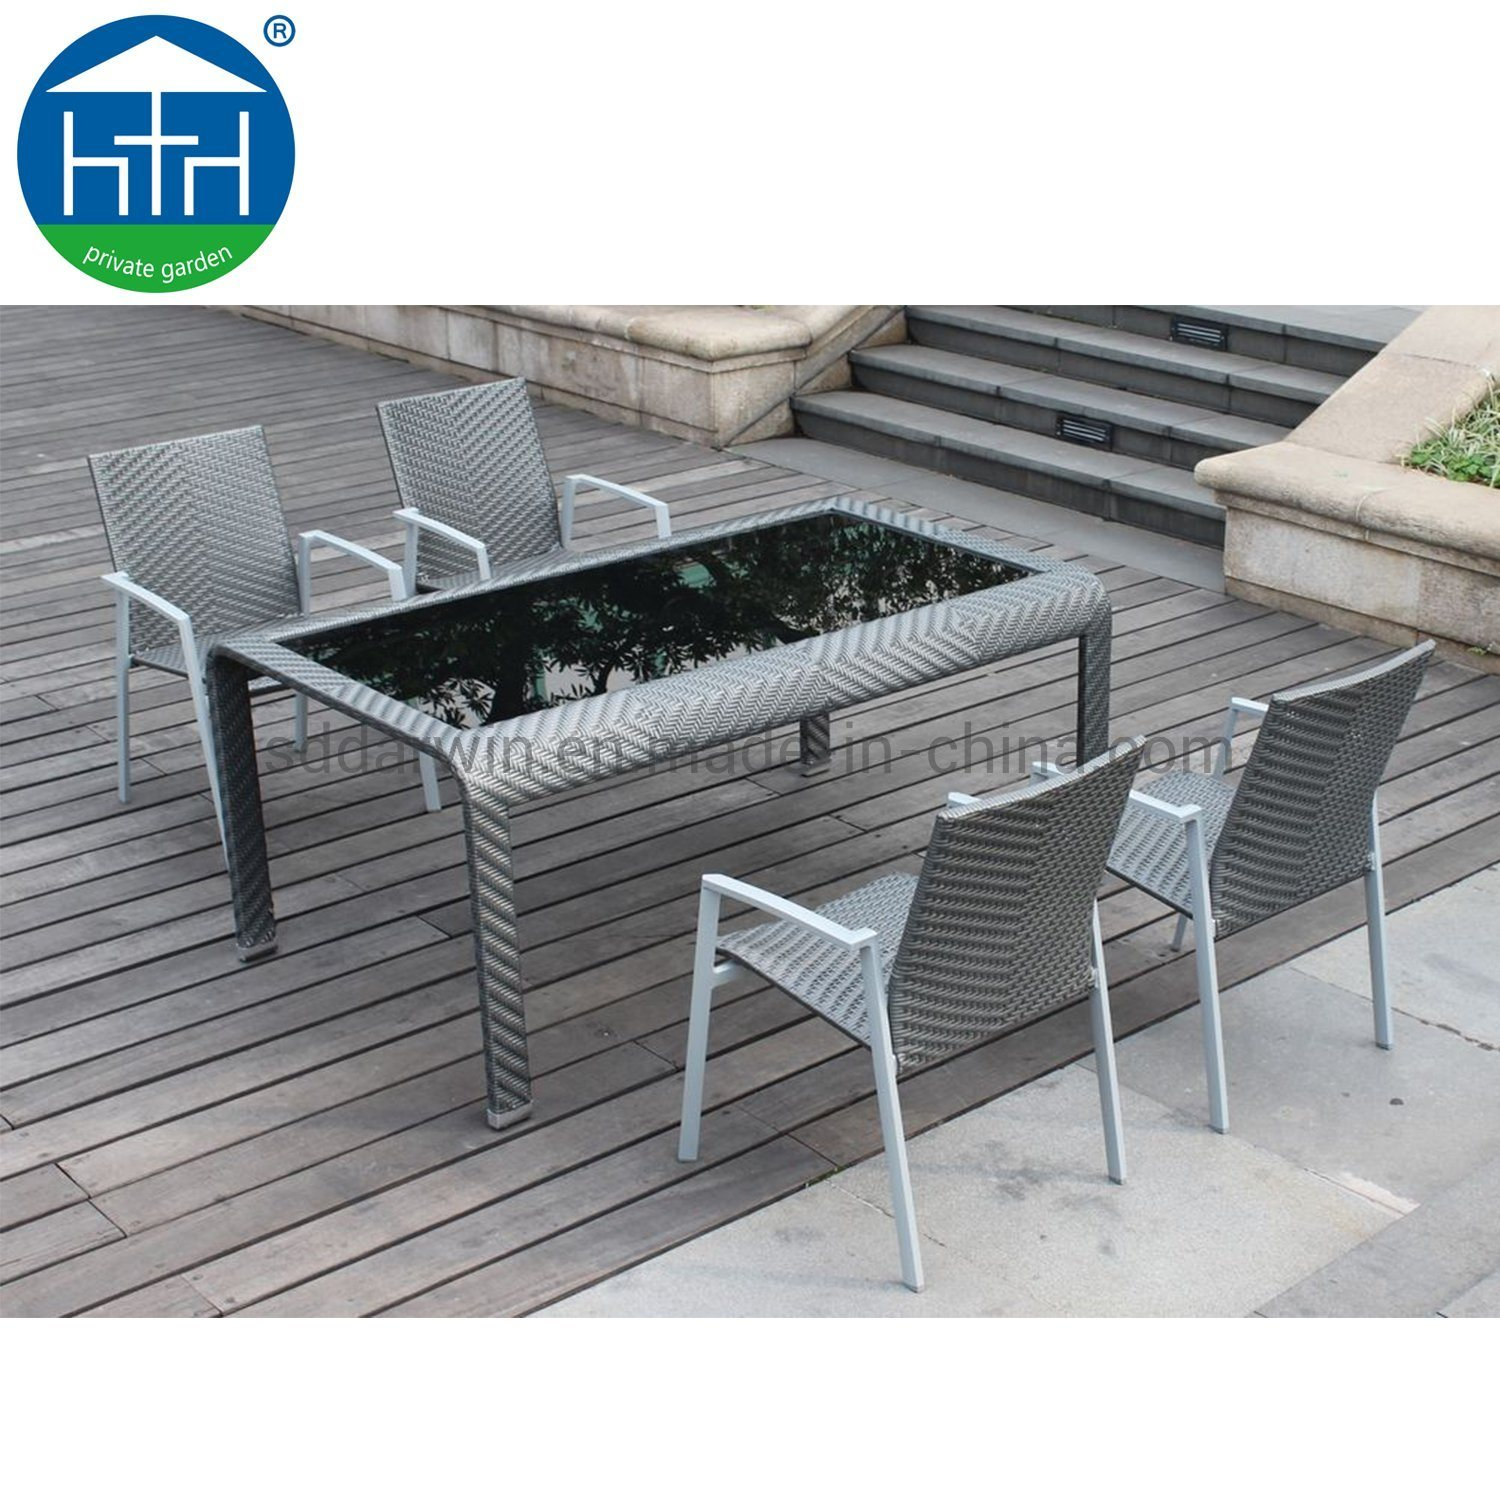 China Wicker Outdoor Furniture Set Dining Table And Chair Garden Patio Setting Photos Pictures Made In China Com